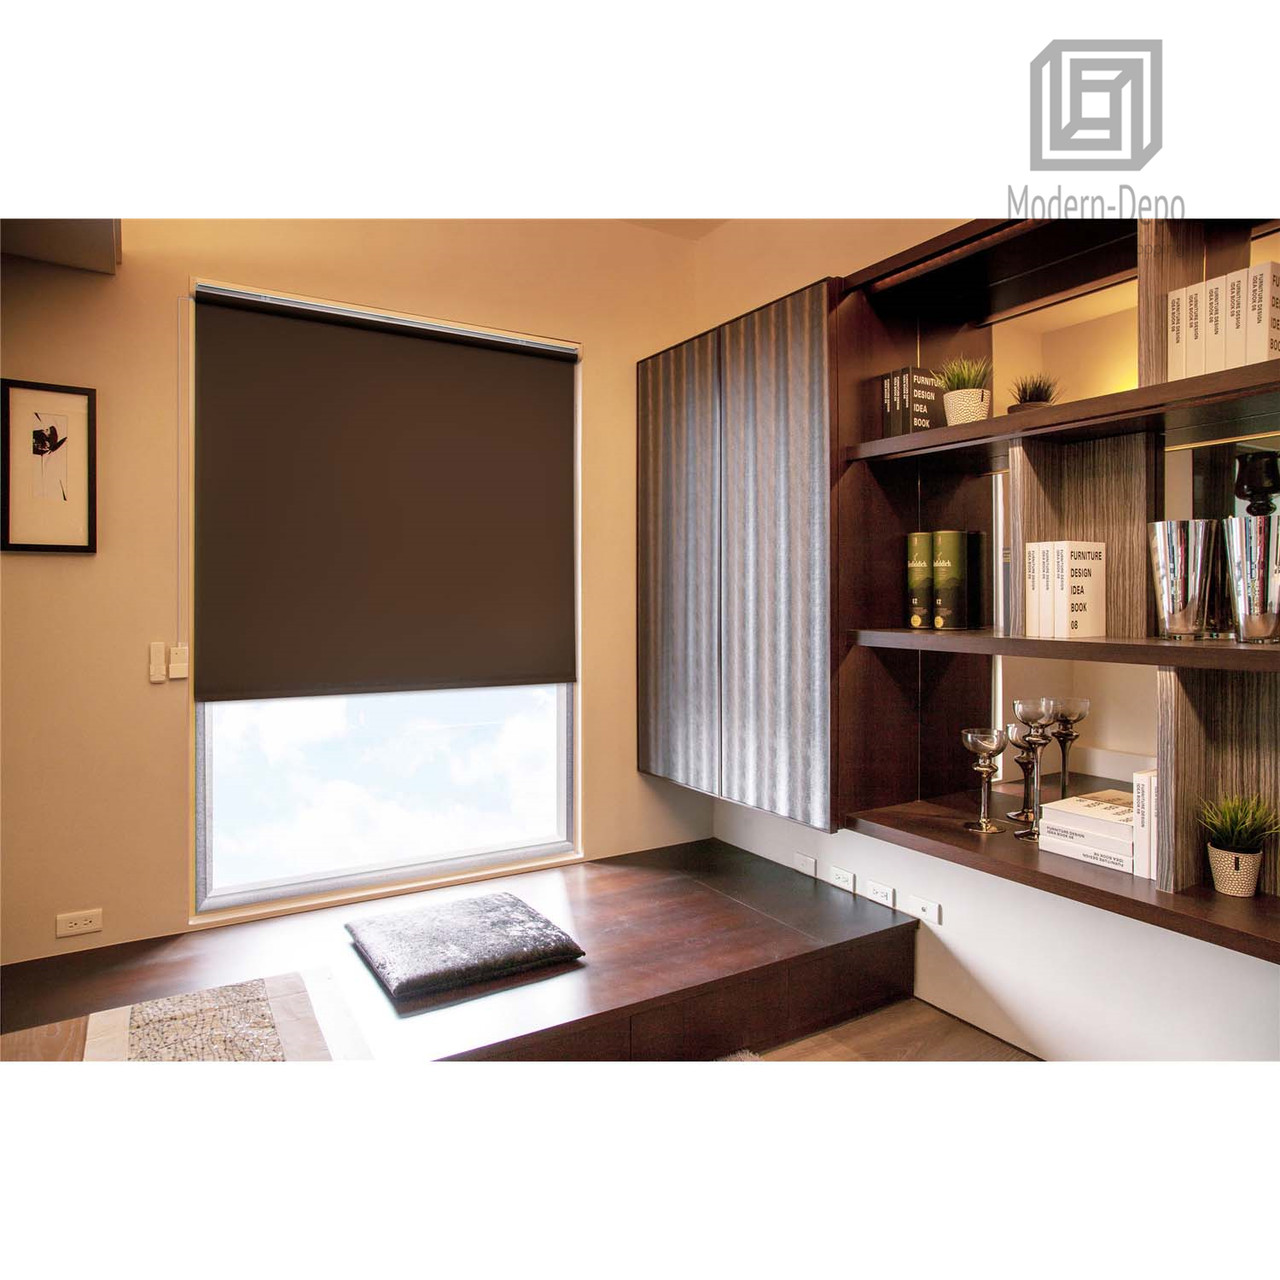 Cordless Roller Window Shades Motorized Remote Roller Blinds Sunscreen Blackout 31 W X 72 H Brown Modern Depo